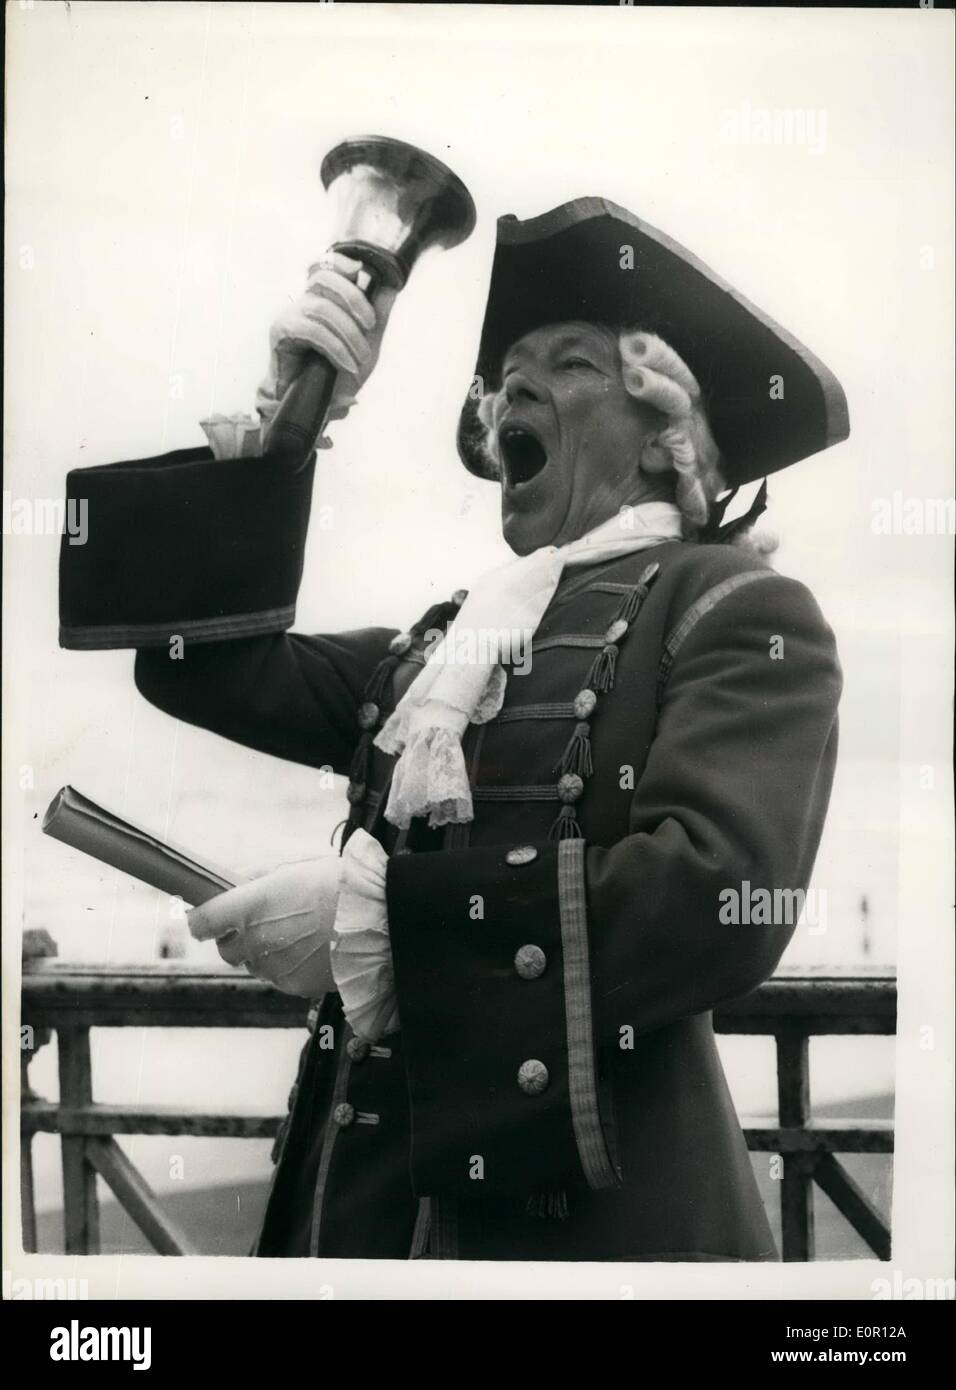 Aug. 08, 1957 - The annual town criers championship at Hastings: Twenty-two Town Criers from all parts of the country gathered at the Seaside town of Hastings ti take part in the National Town Criers Championship,Norman Wisdom, the comedian, and Vera Lynn, the well known singer, and one-time Forces Sweetheart, were judges. Photo shows Ben Johnson, the Town Crier, of Fowsy, Cornwall, who has been a town Crier since 1936, who ha won the championship four times, seen as he gets in some practice before the start of the contest today. - Stock Image